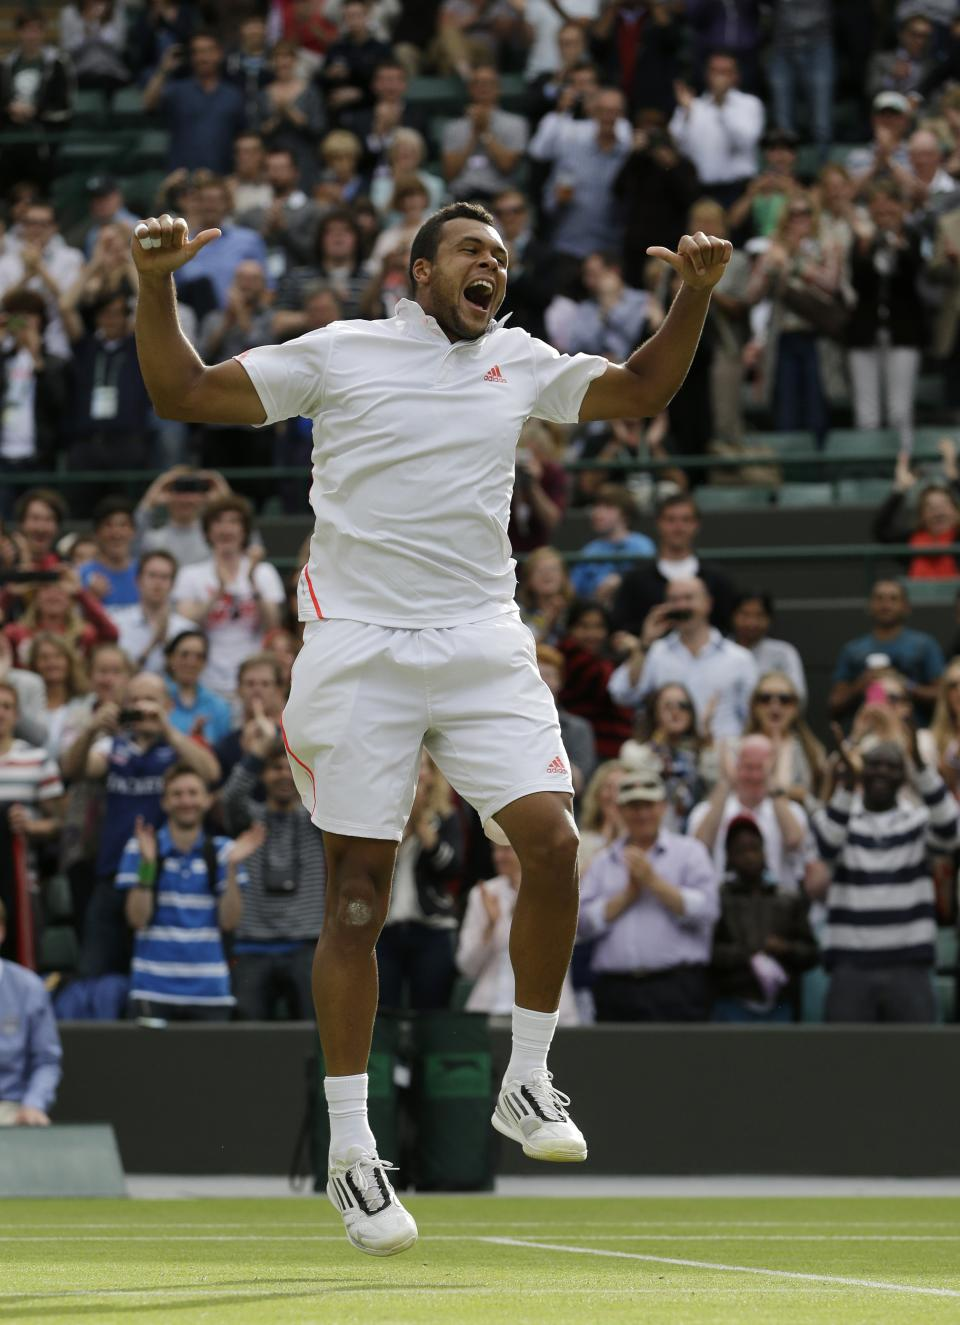 Jo-Wilfried Tsonga of France reacts after defeating Philipp Kohlschreiber of Germany during a quarterfinals match at the All England Lawn Tennis Championships at Wimbledon, England, Wednesday, July 4, 2012. (AP Photo/Kirsty Wigglesworth)